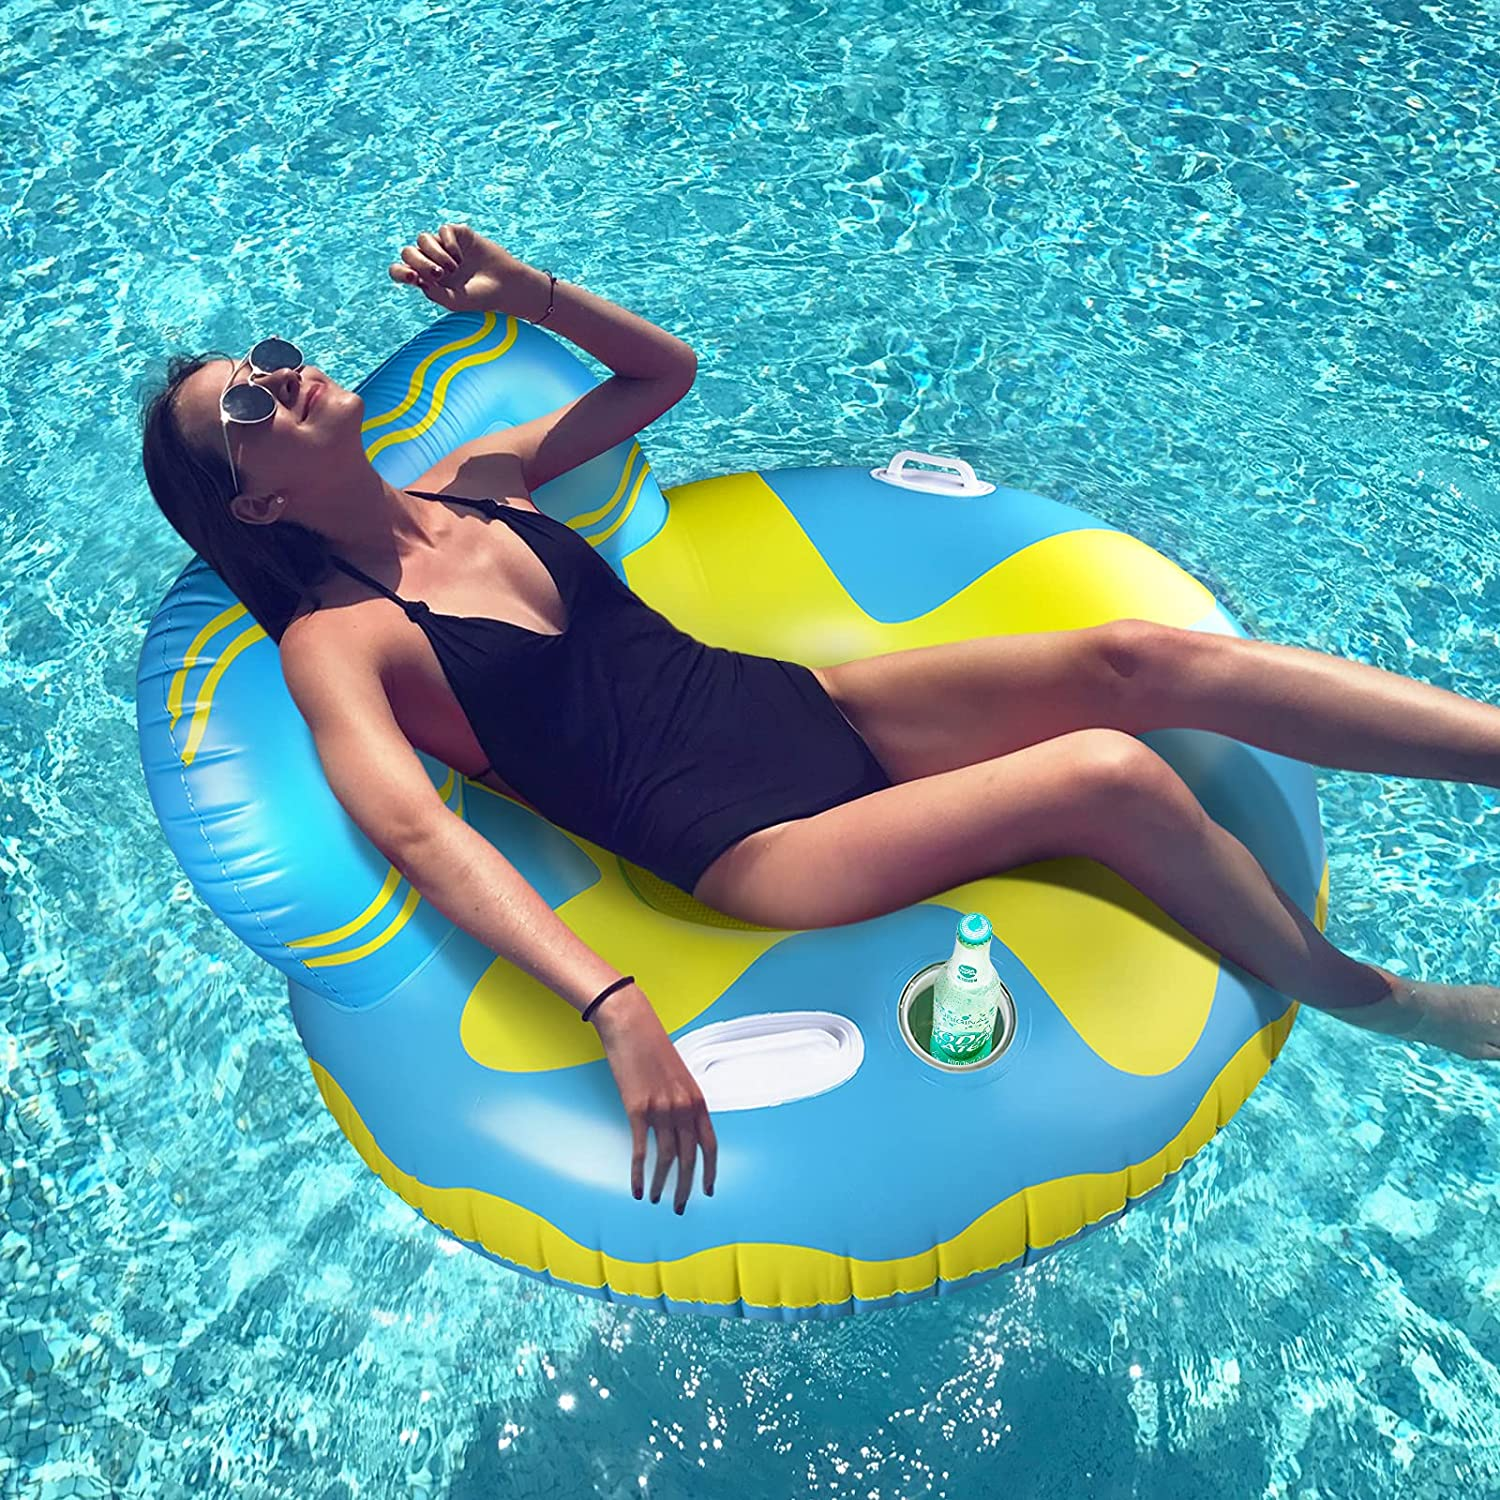 Inflatable Pool Floats, REAPP Pool Float Raft with Cup Holder and Handles, Multi-Purpose Floating Lounge Chair with Headrest, Portable Water Hammock Floaties with Mesh Bottom for Adults/Kids